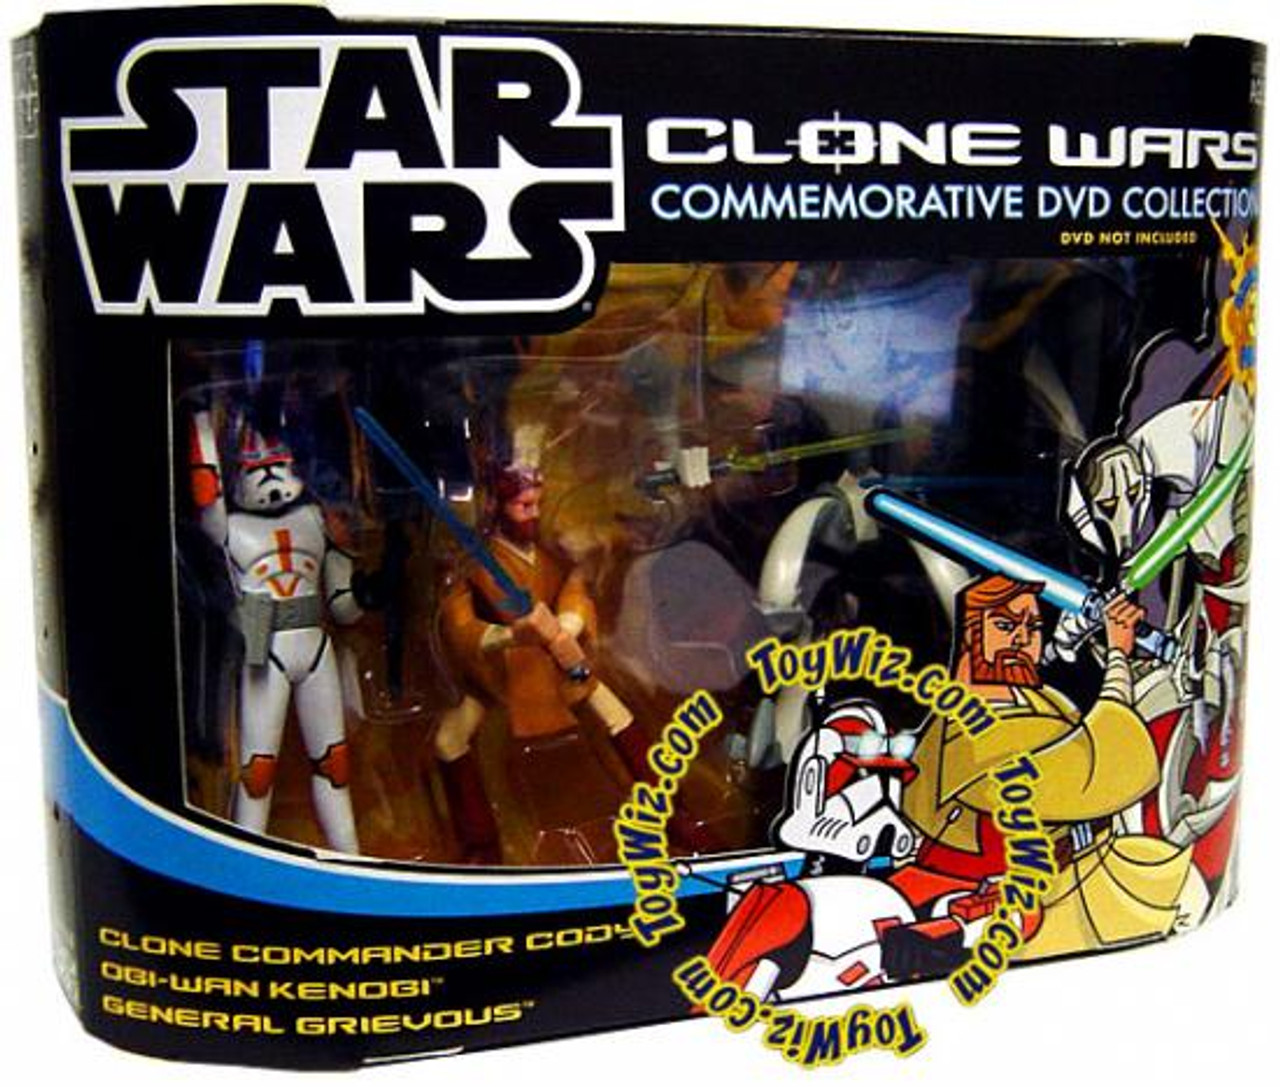 Star Wars The Clone Wars Clone Wars Cartoon Network Clone Wars Commemorative DVD Collection Exclusive Action Figure 3-Pack [Set #3]